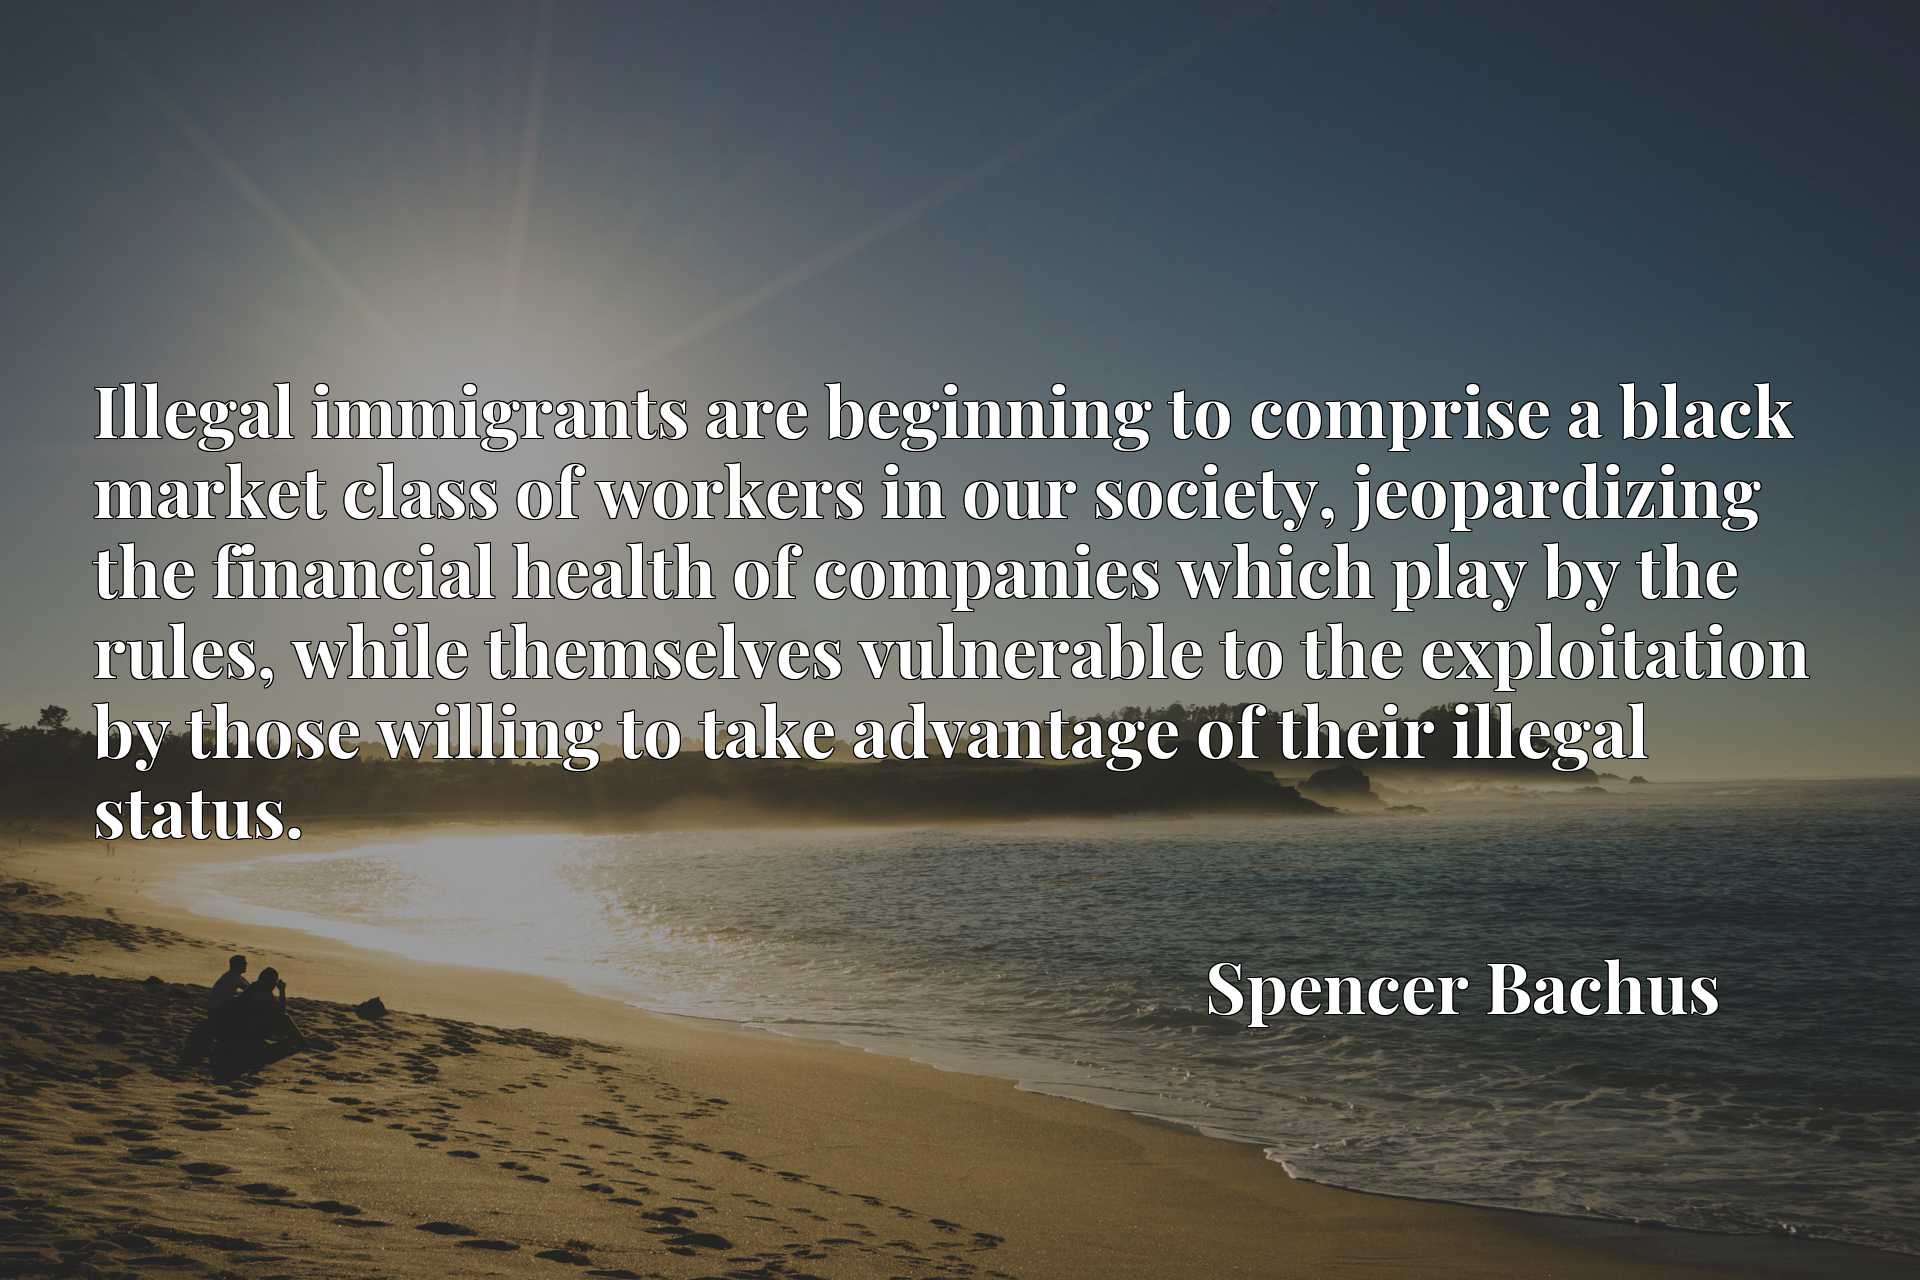 Illegal immigrants are beginning to comprise a black market class of workers in our society, jeopardizing the financial health of companies which play by the rules, while themselves vulnerable to the exploitation by those willing to take advantage of their illegal status.